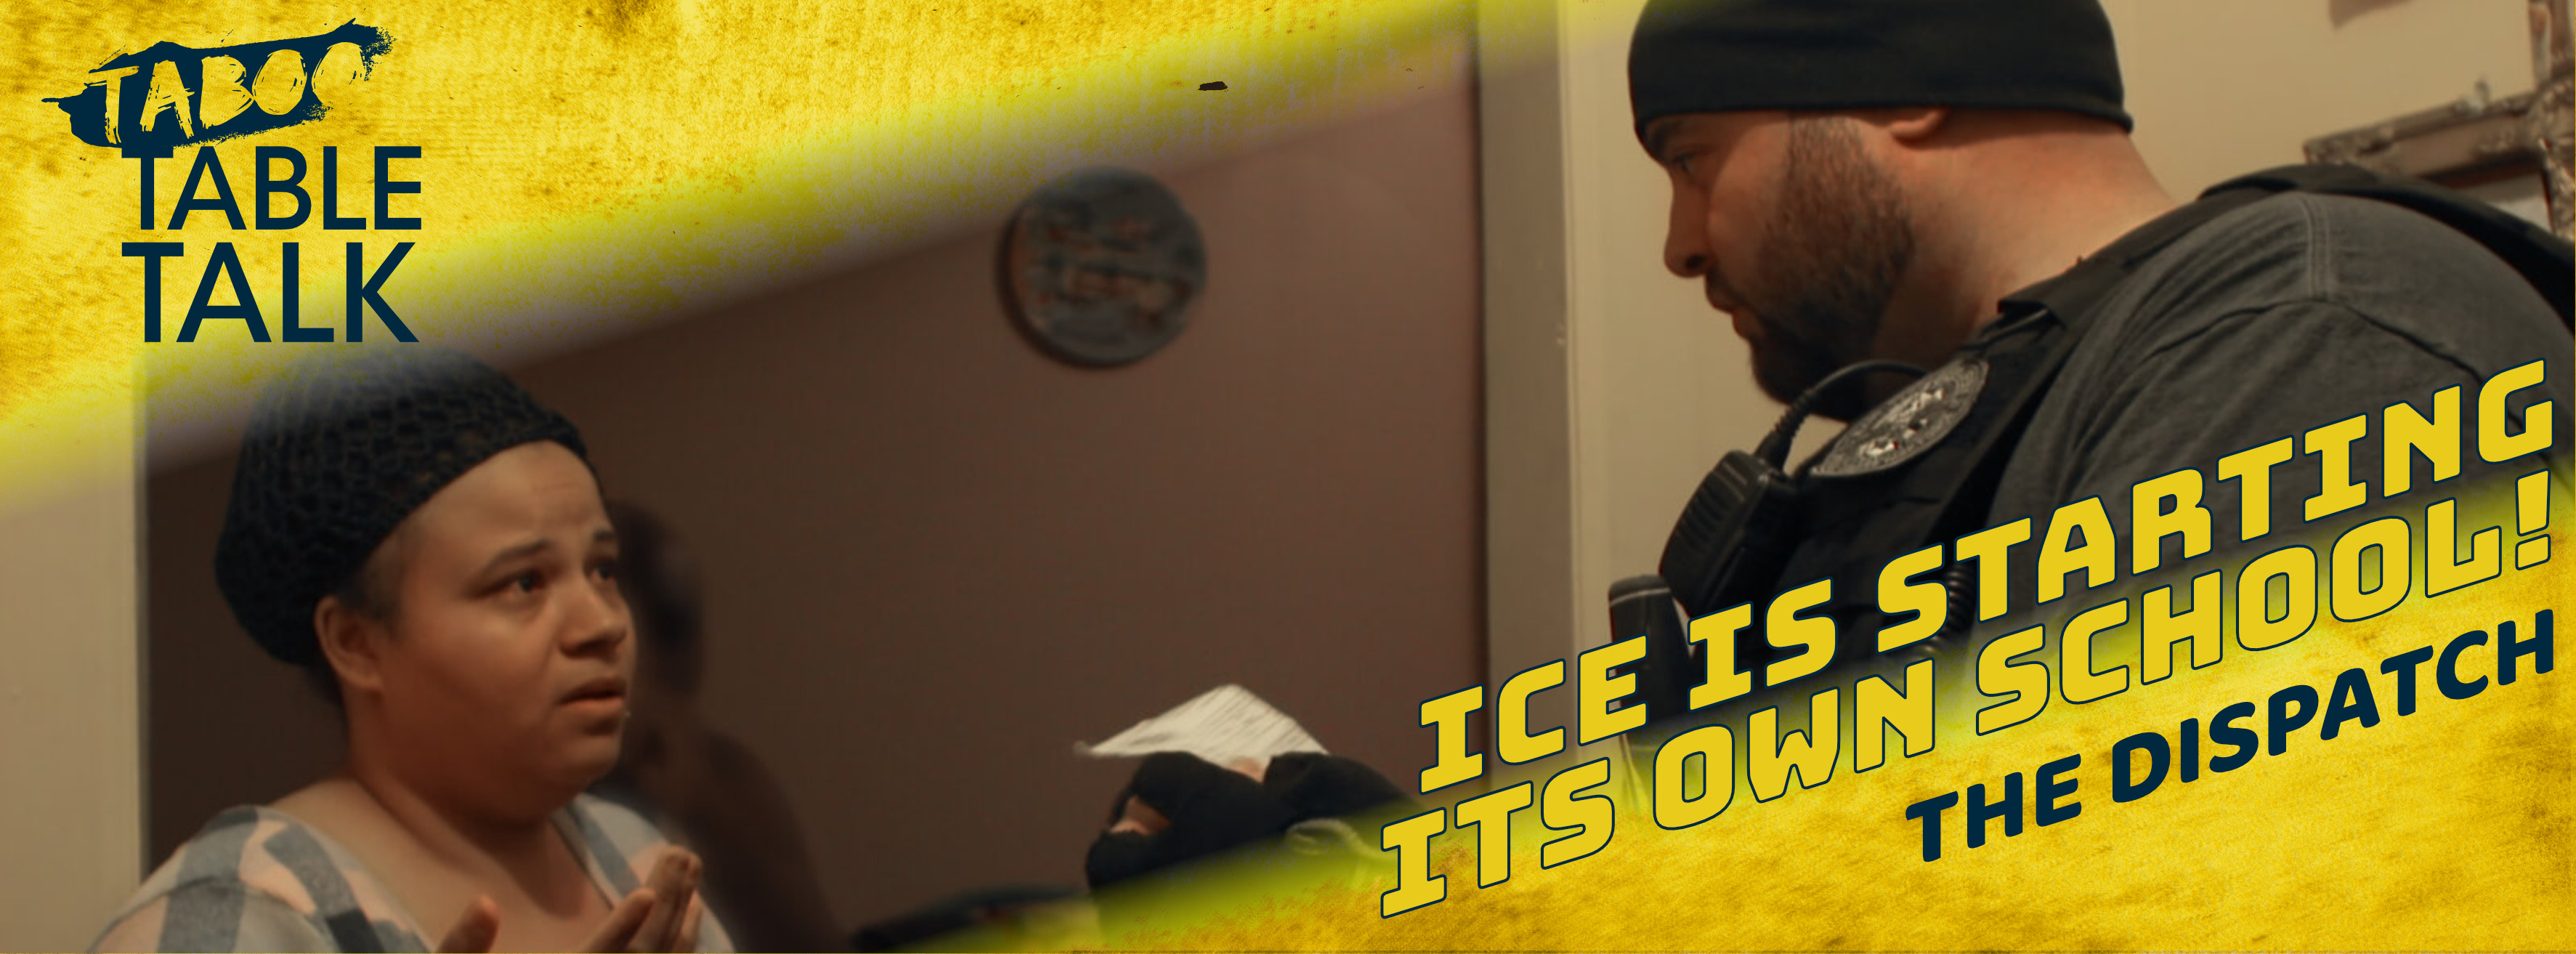 ICE Wants To Start A Citizen Academy To Arrest Immigrants! [The Dispatch]